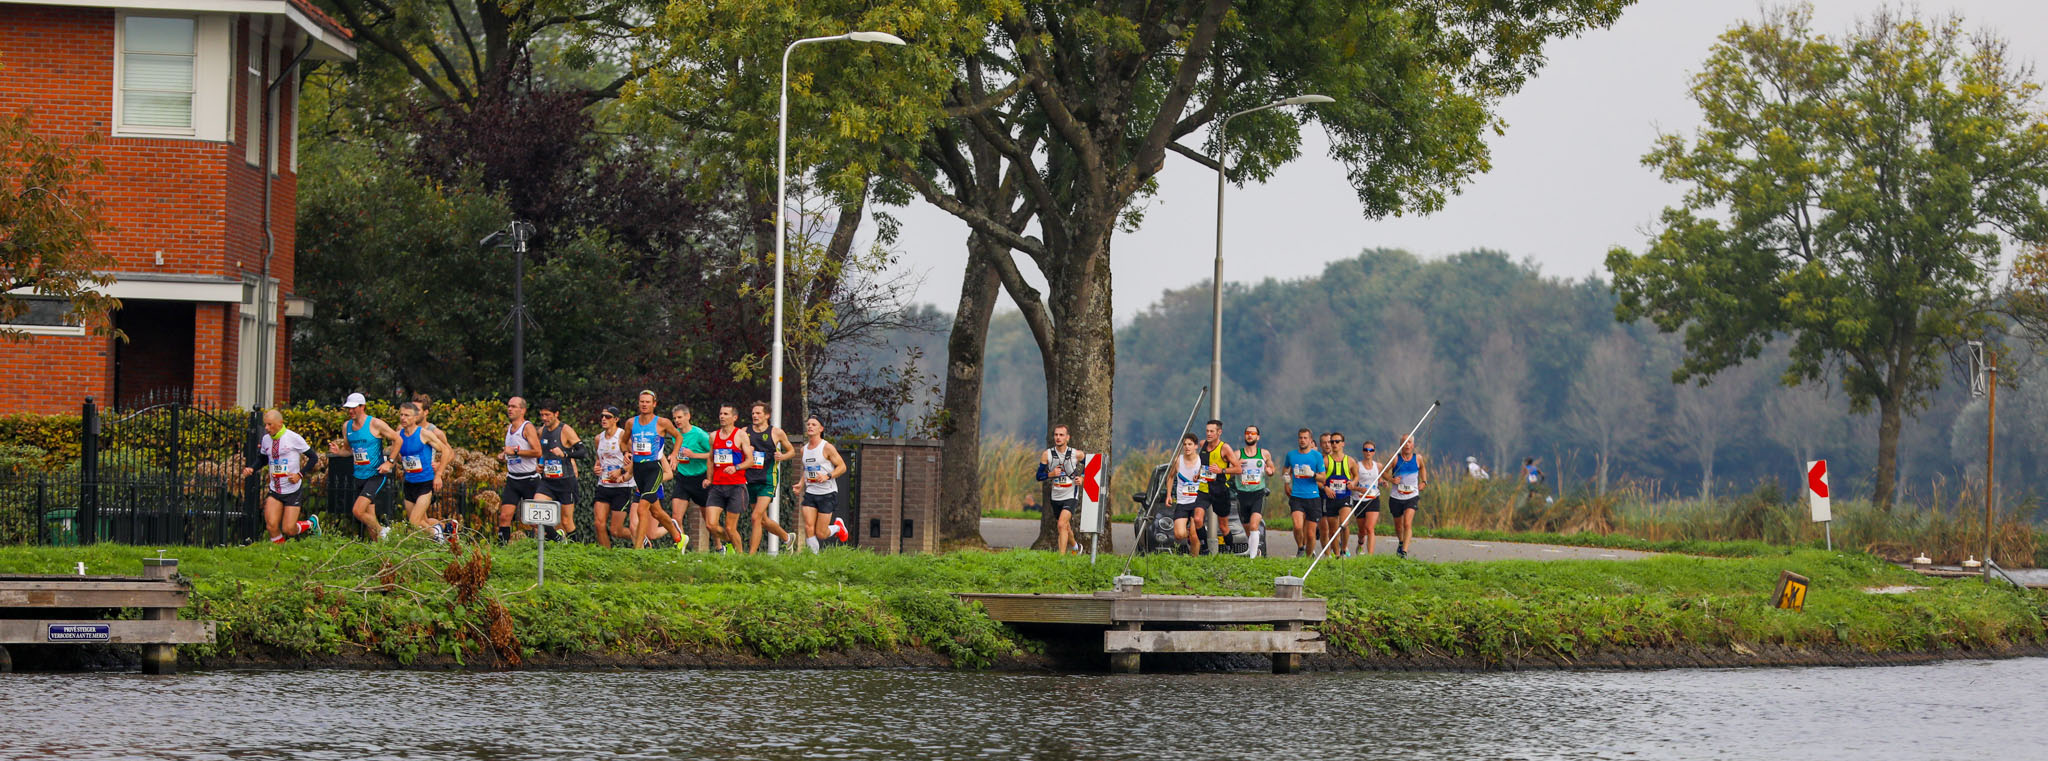 Spiksplinternieuw TCS Amsterdam Marathon 2020 | Sports Tours international YV-63